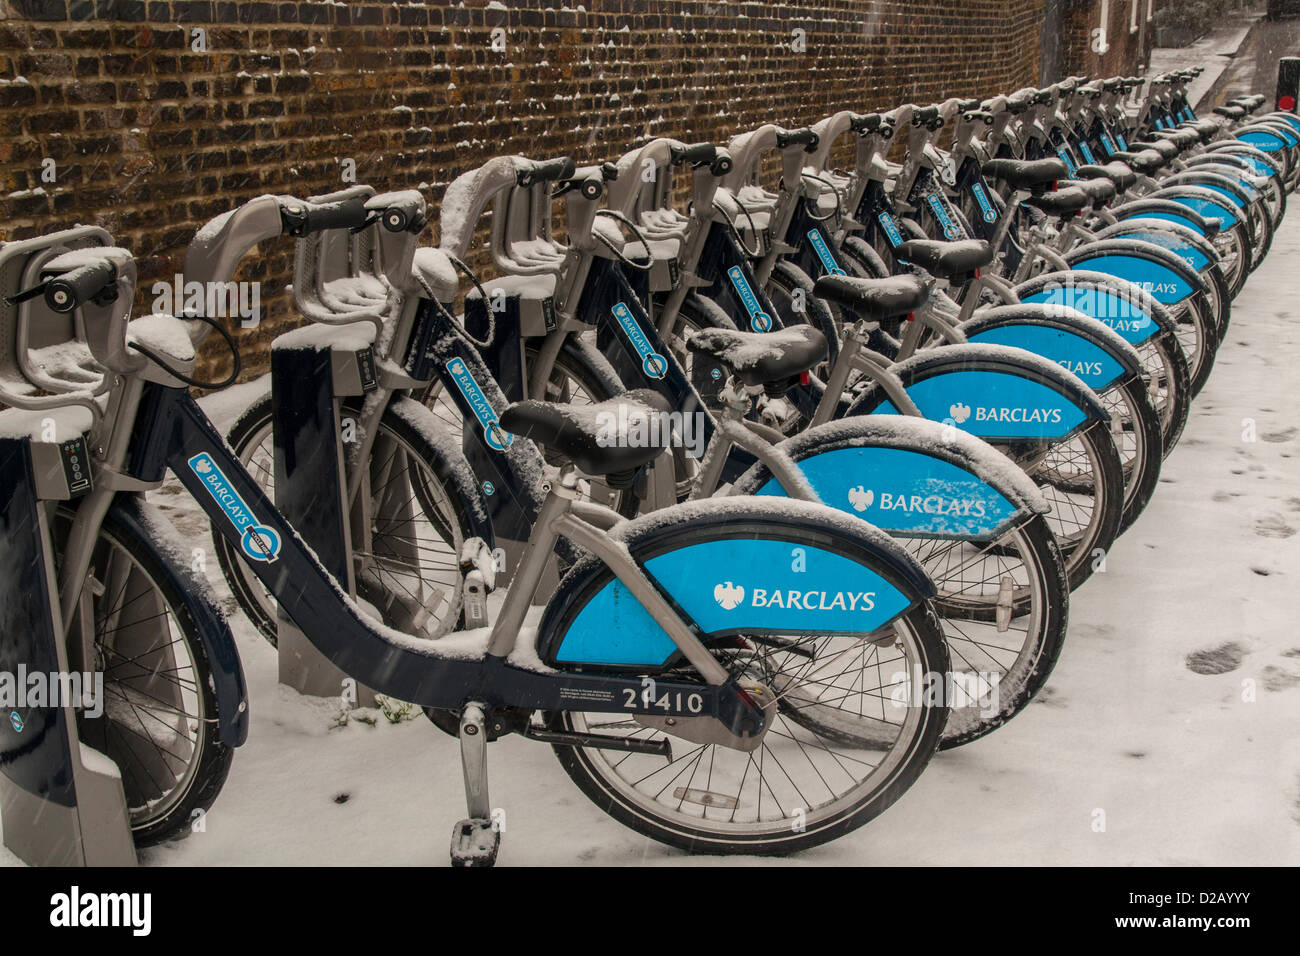 London, UK. 18th January 2013. boris Bikes feeling the chill in Islington, Central London, as snow falls across - Stock Image